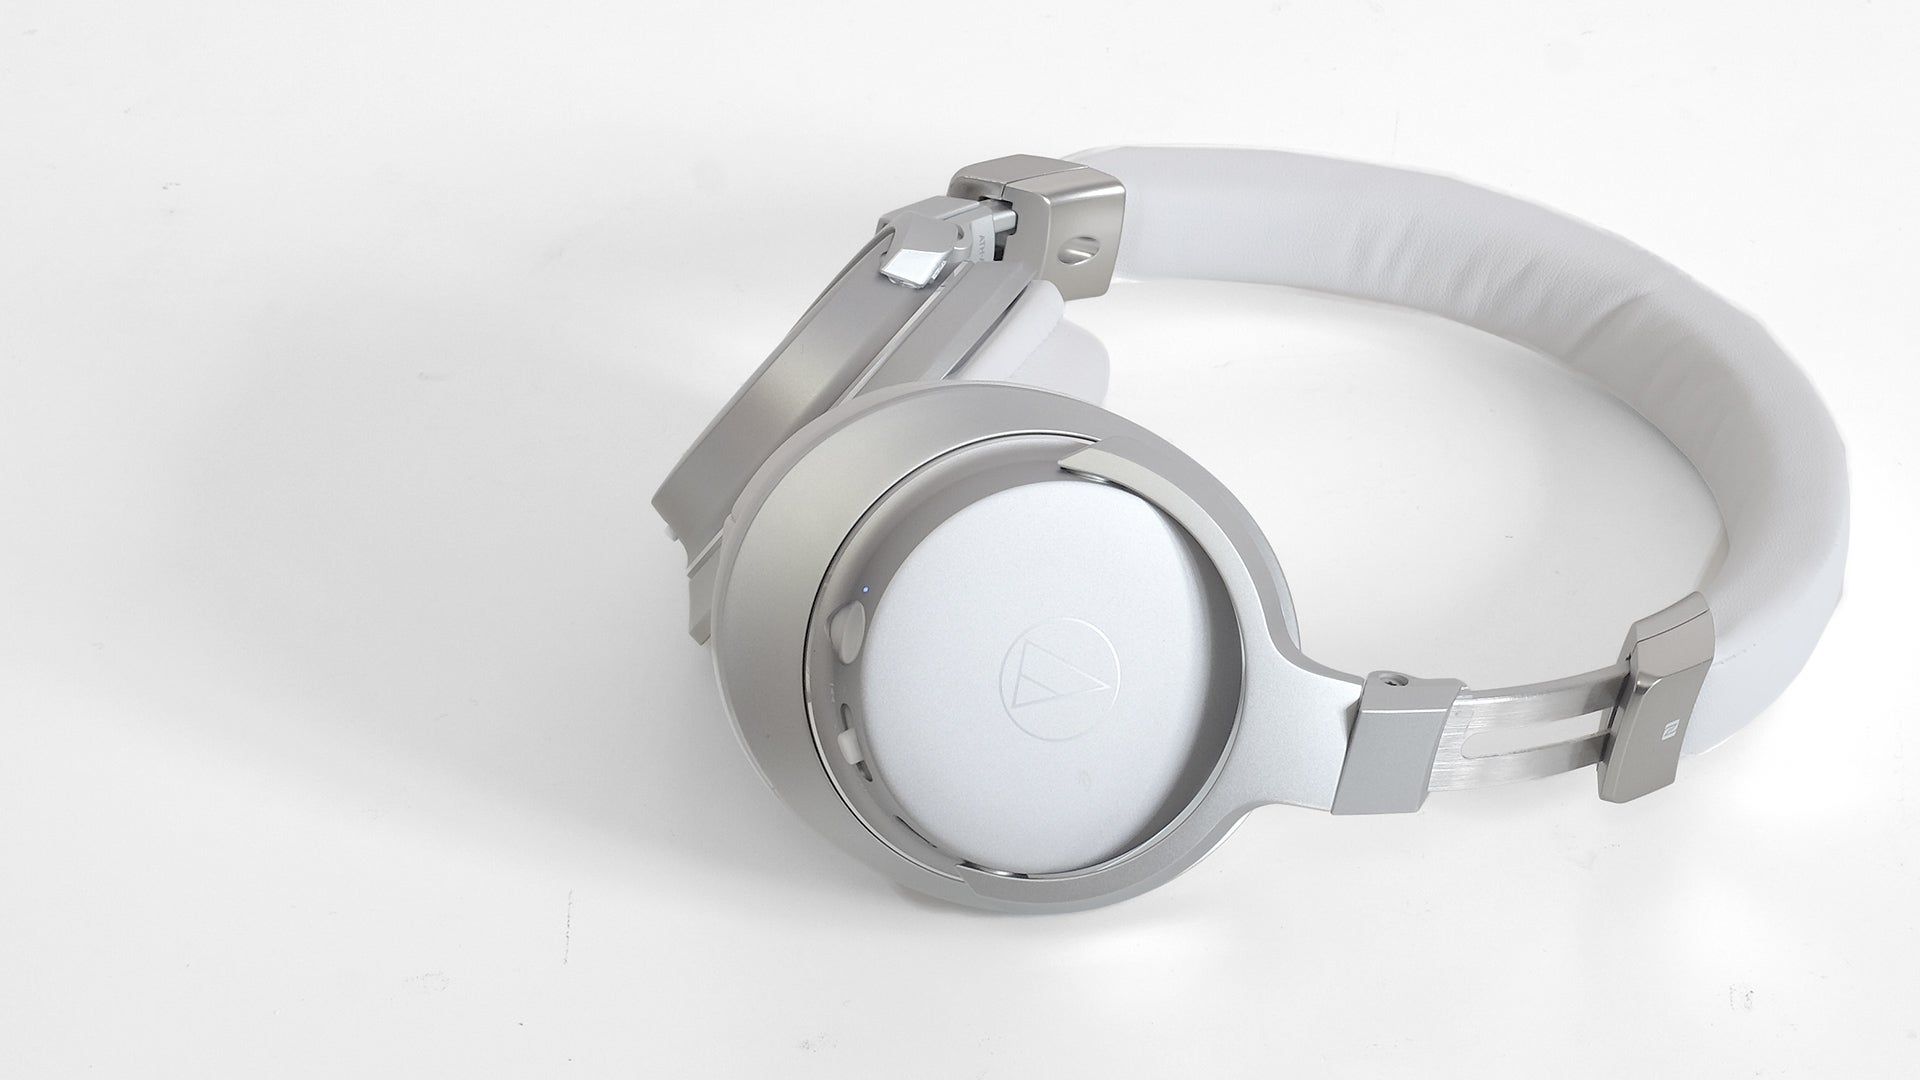 Audio Technica Ath Ar5bt Review Trusted Reviews A Jays One Black